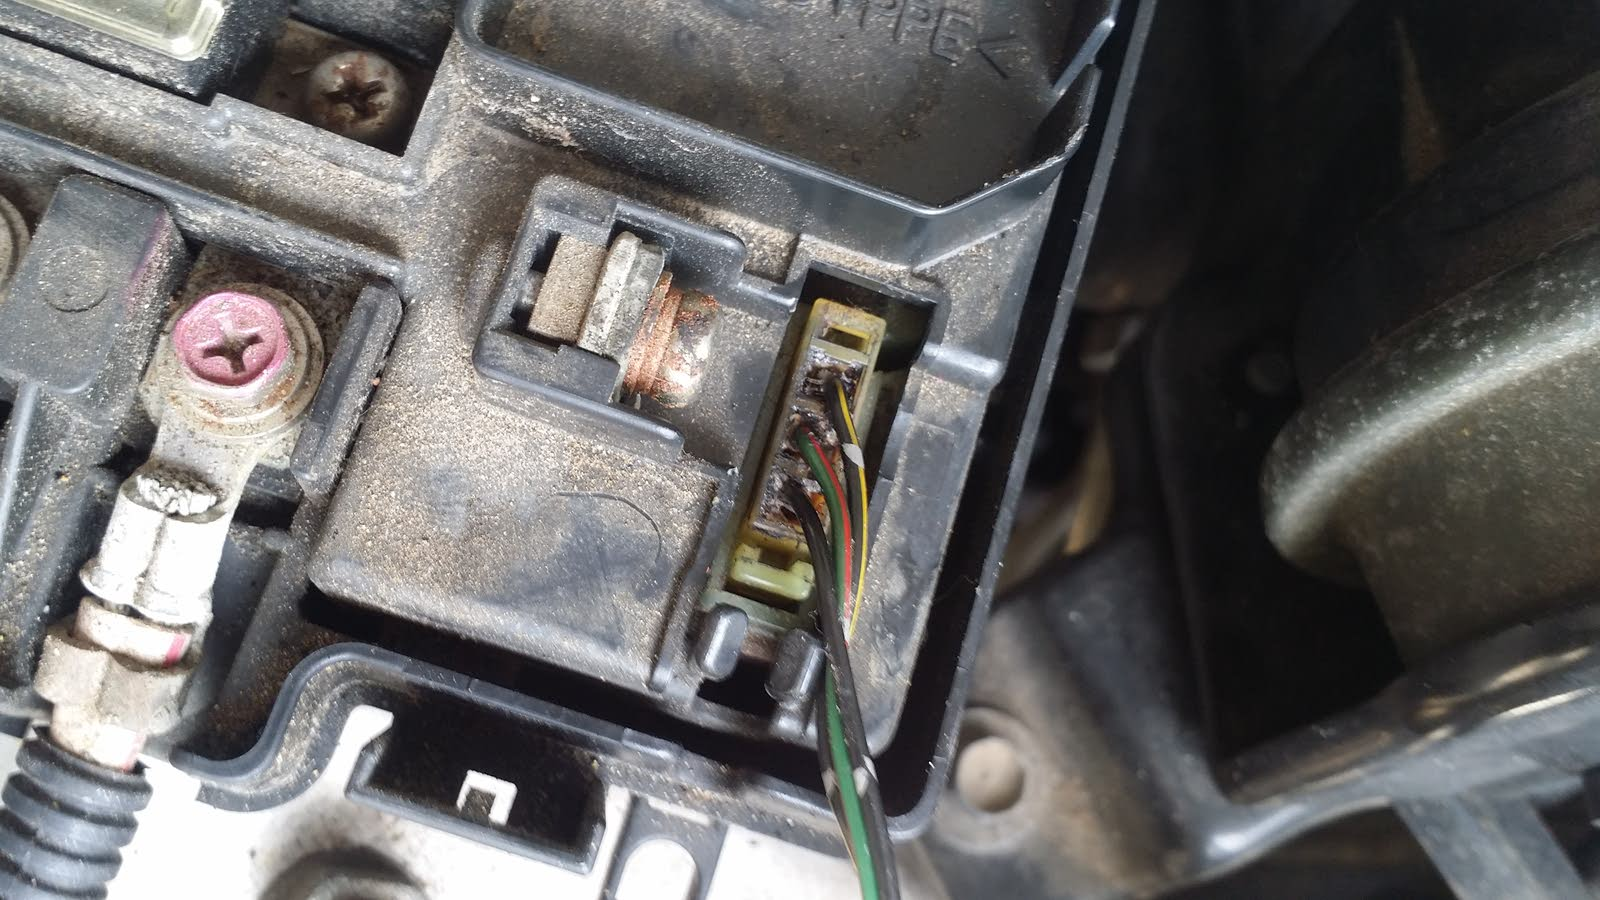 hight resolution of the 3 wires coming from fuse box under hood by the eld is fried or something honda accord questions